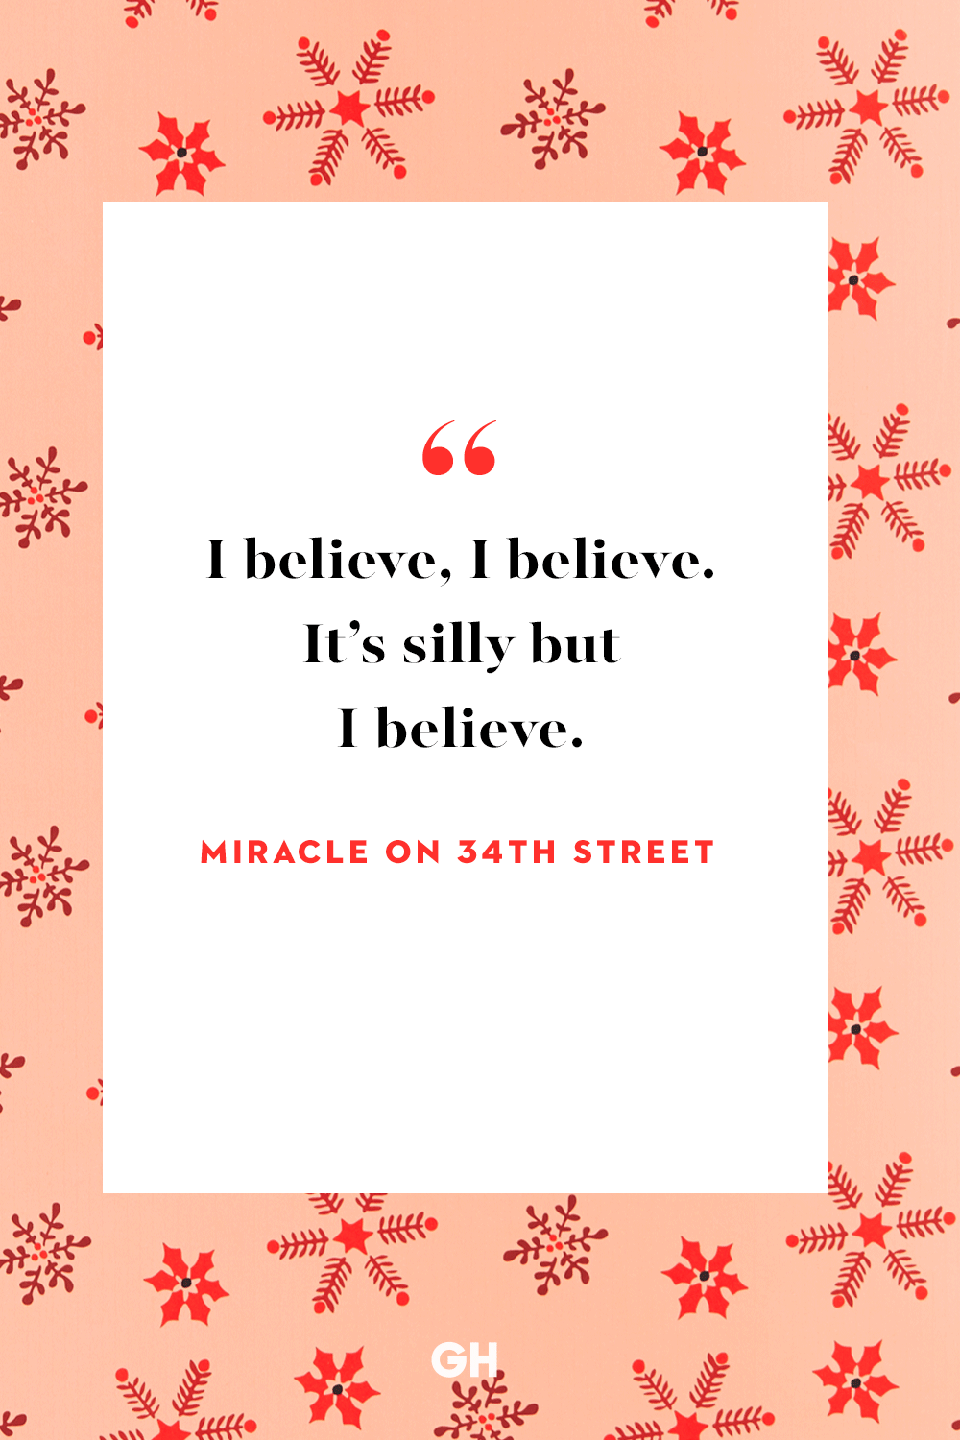 <p>I believe, I believe. It's silly but I believe.</p>